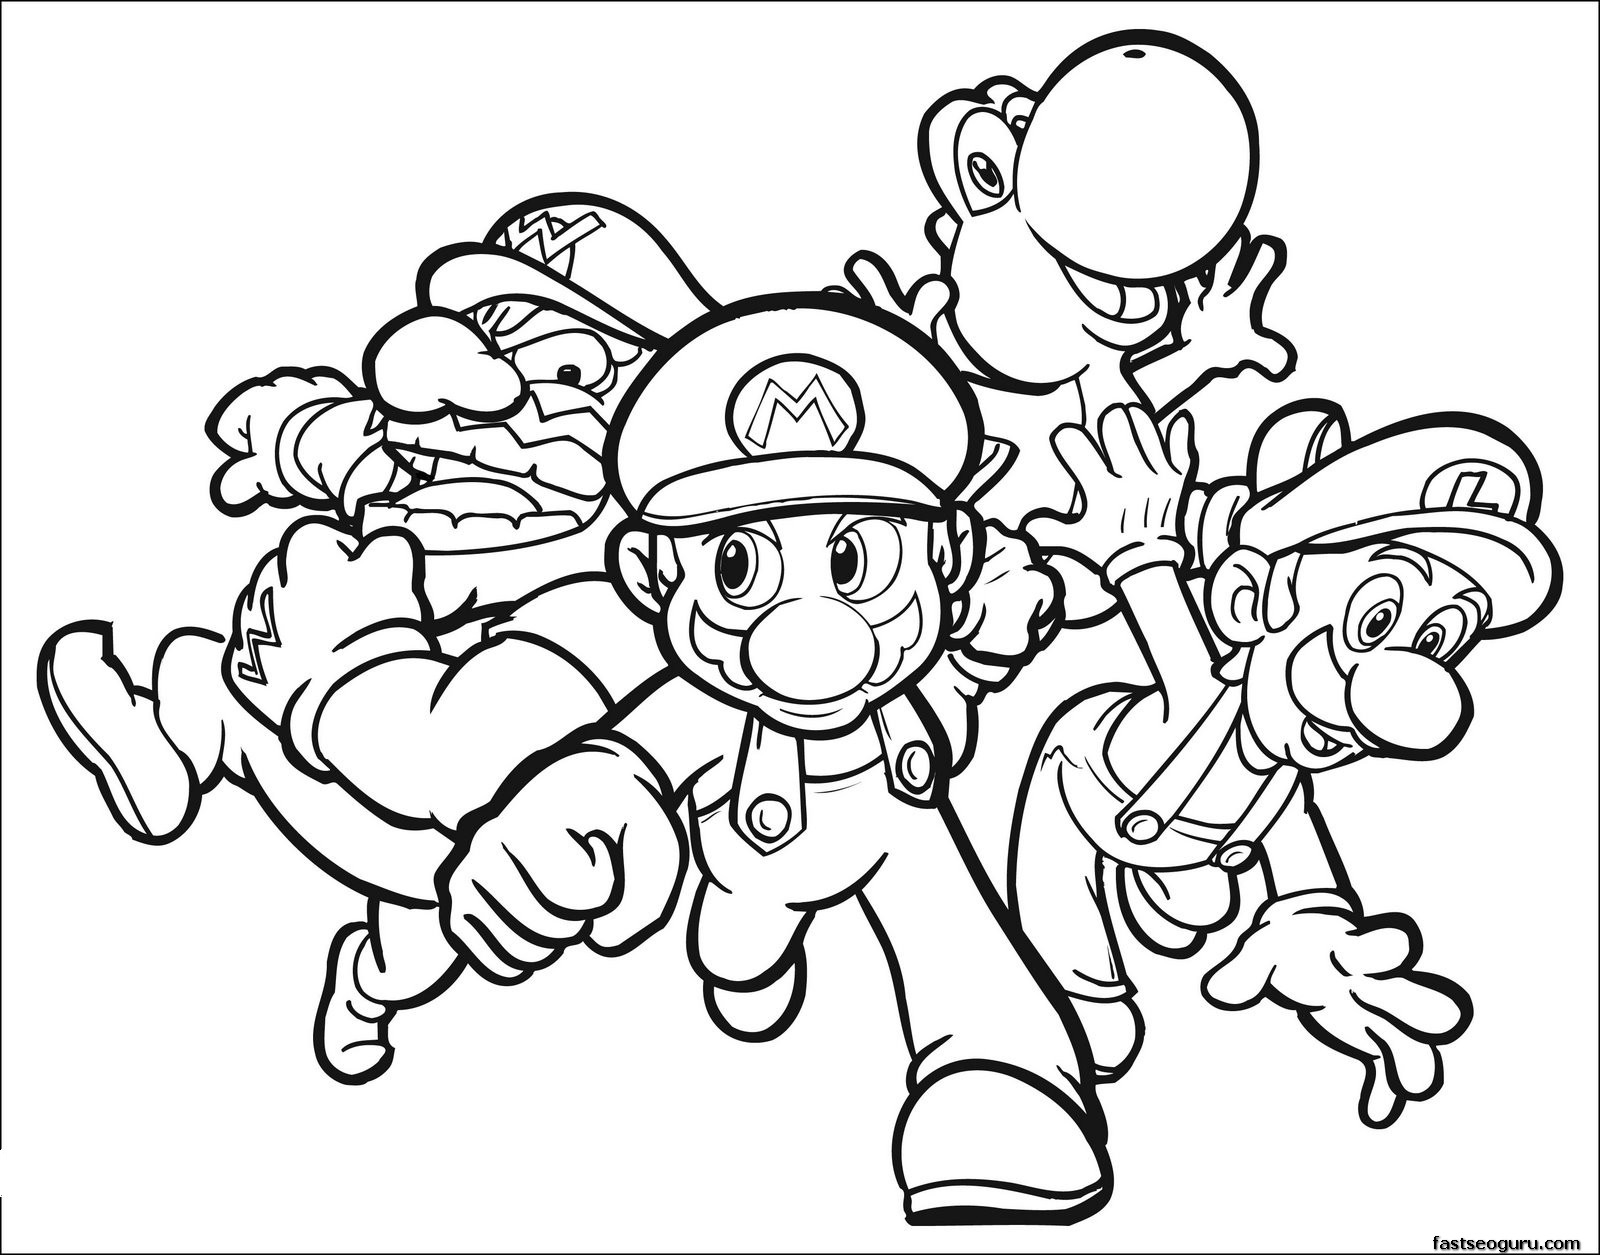 Mario Coloring Pages For Boys 01